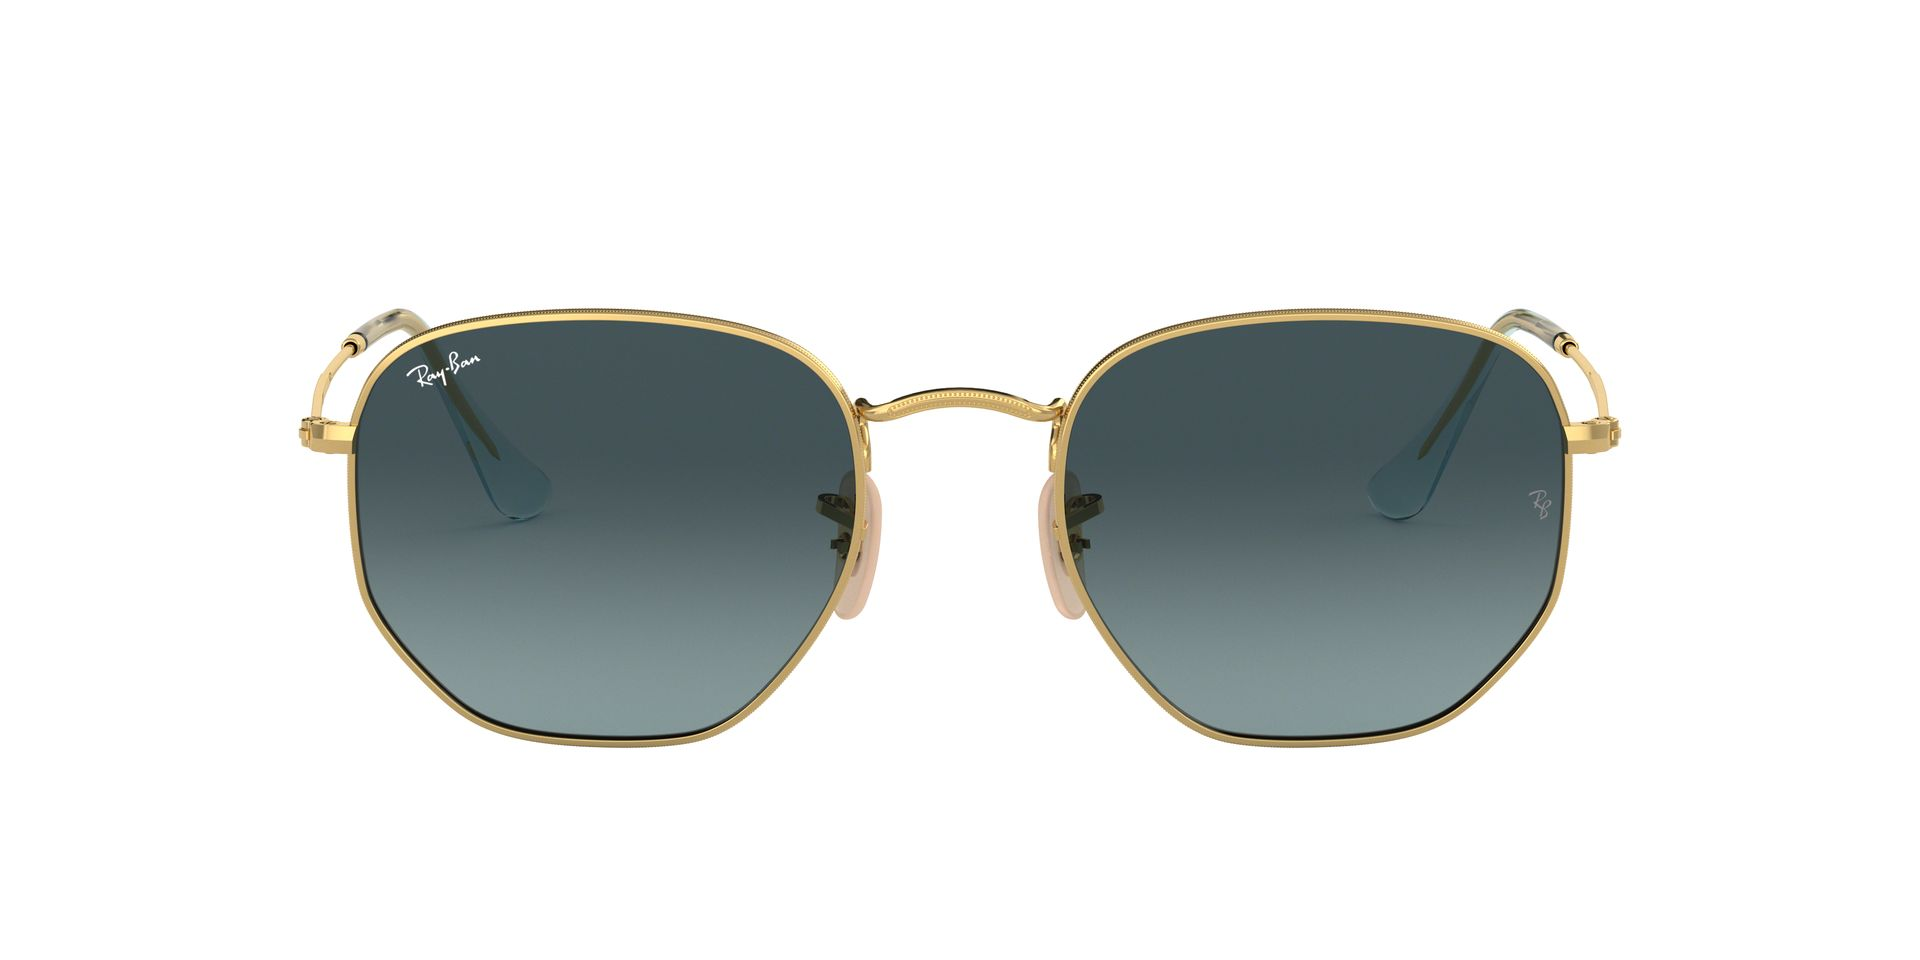 RAY-BAN HEXAGONAL RB 3548N 91233M -360